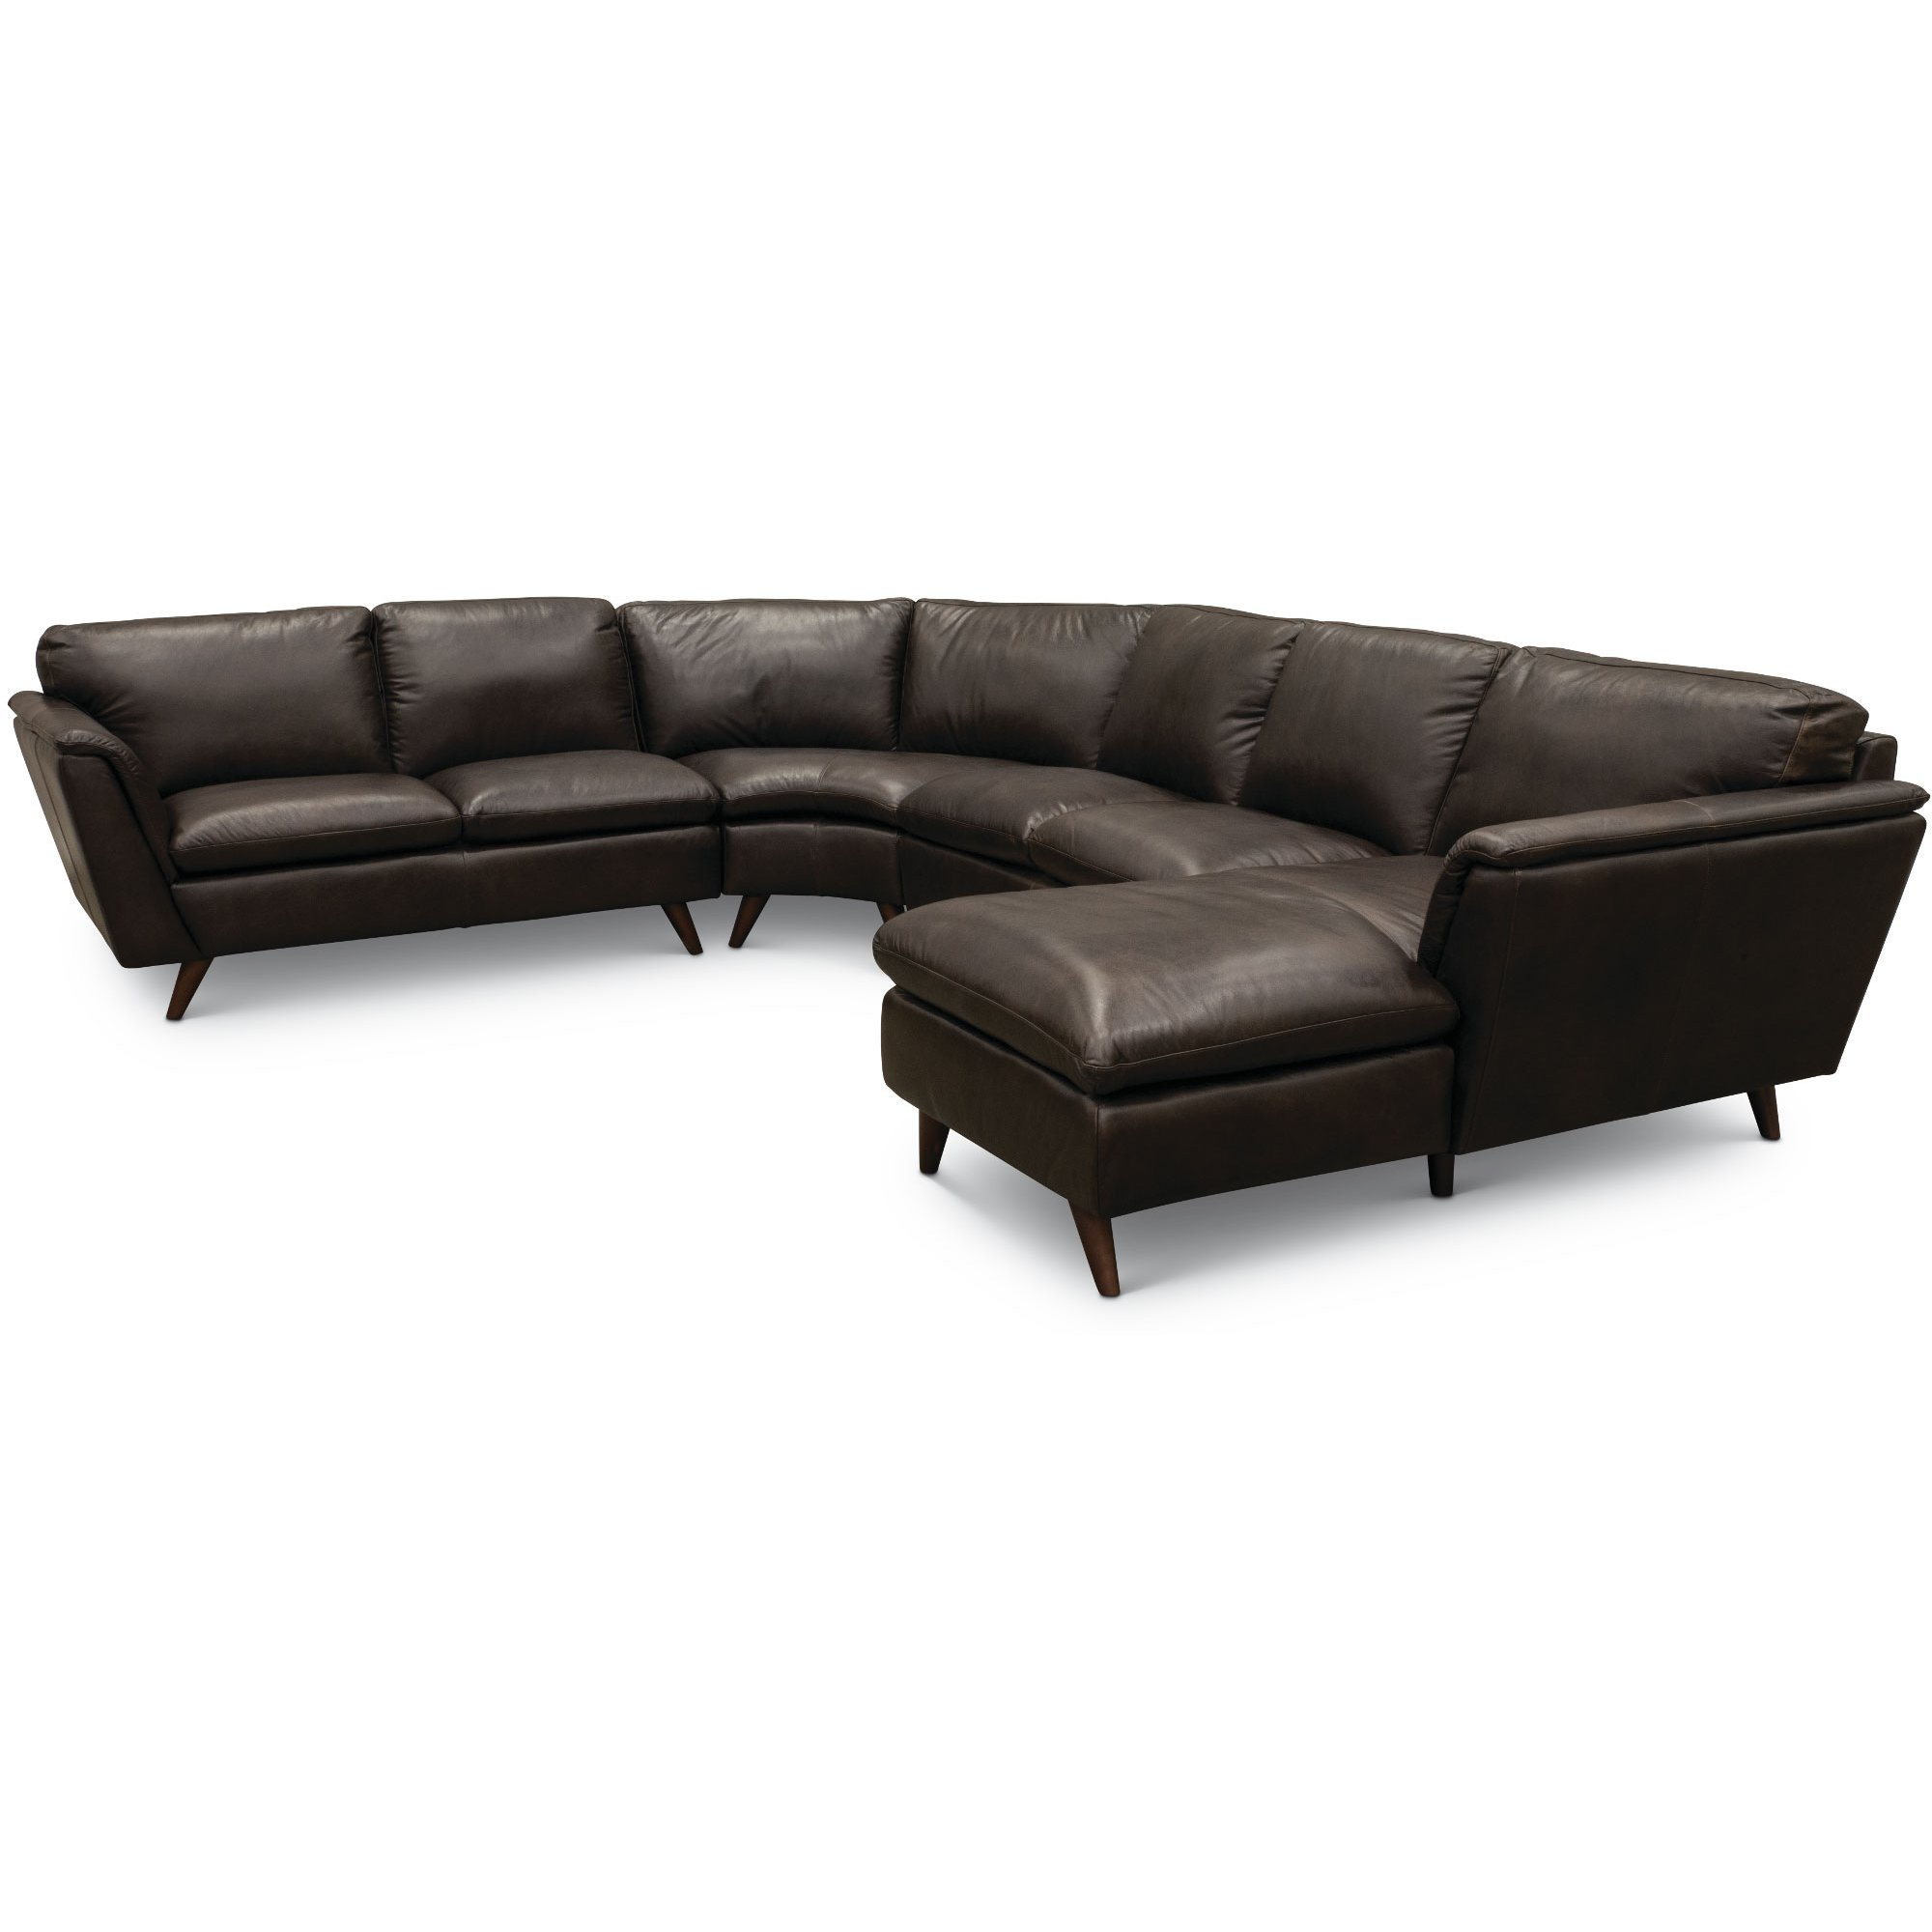 Brown Leather 4 Piece Sectional Sofa with RAF Chaise - Jeffrey | RC ...